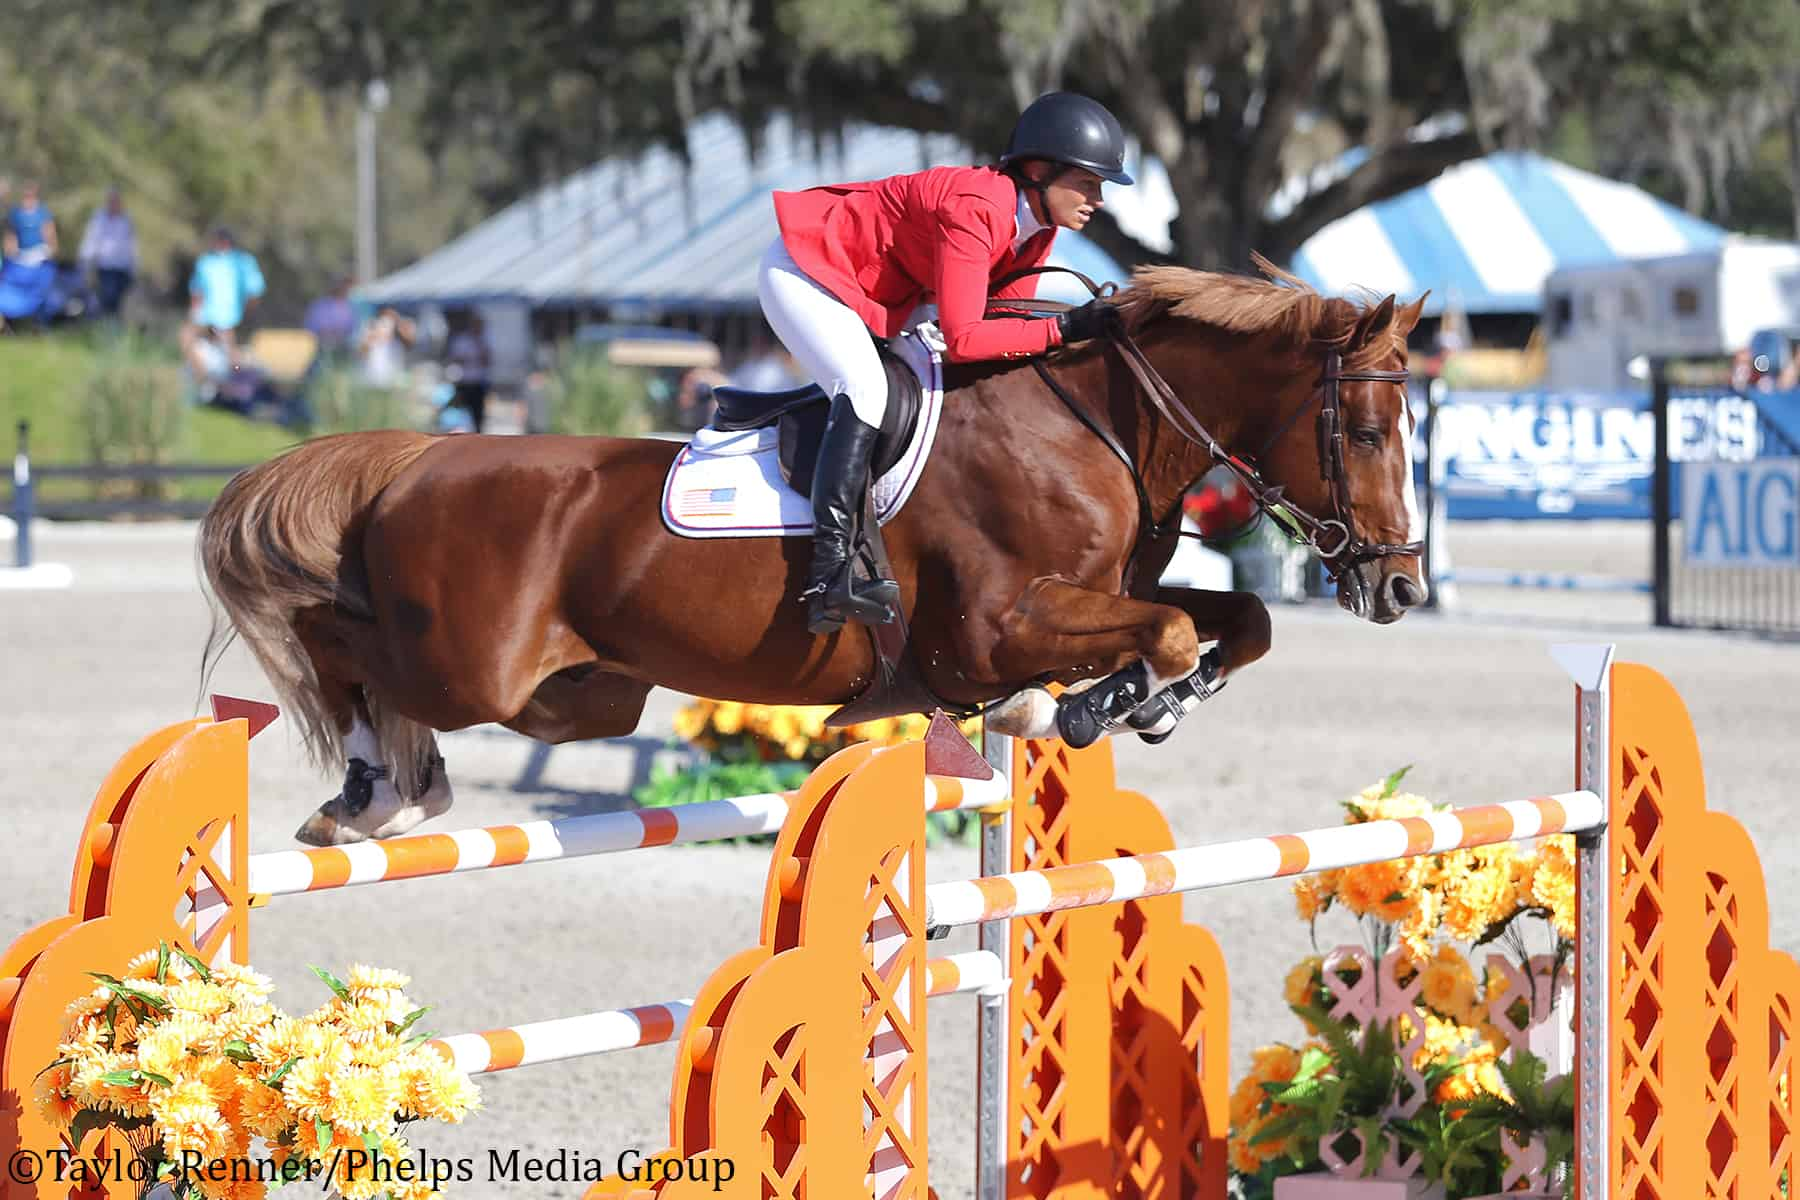 Beezie Madden and Darry Lou